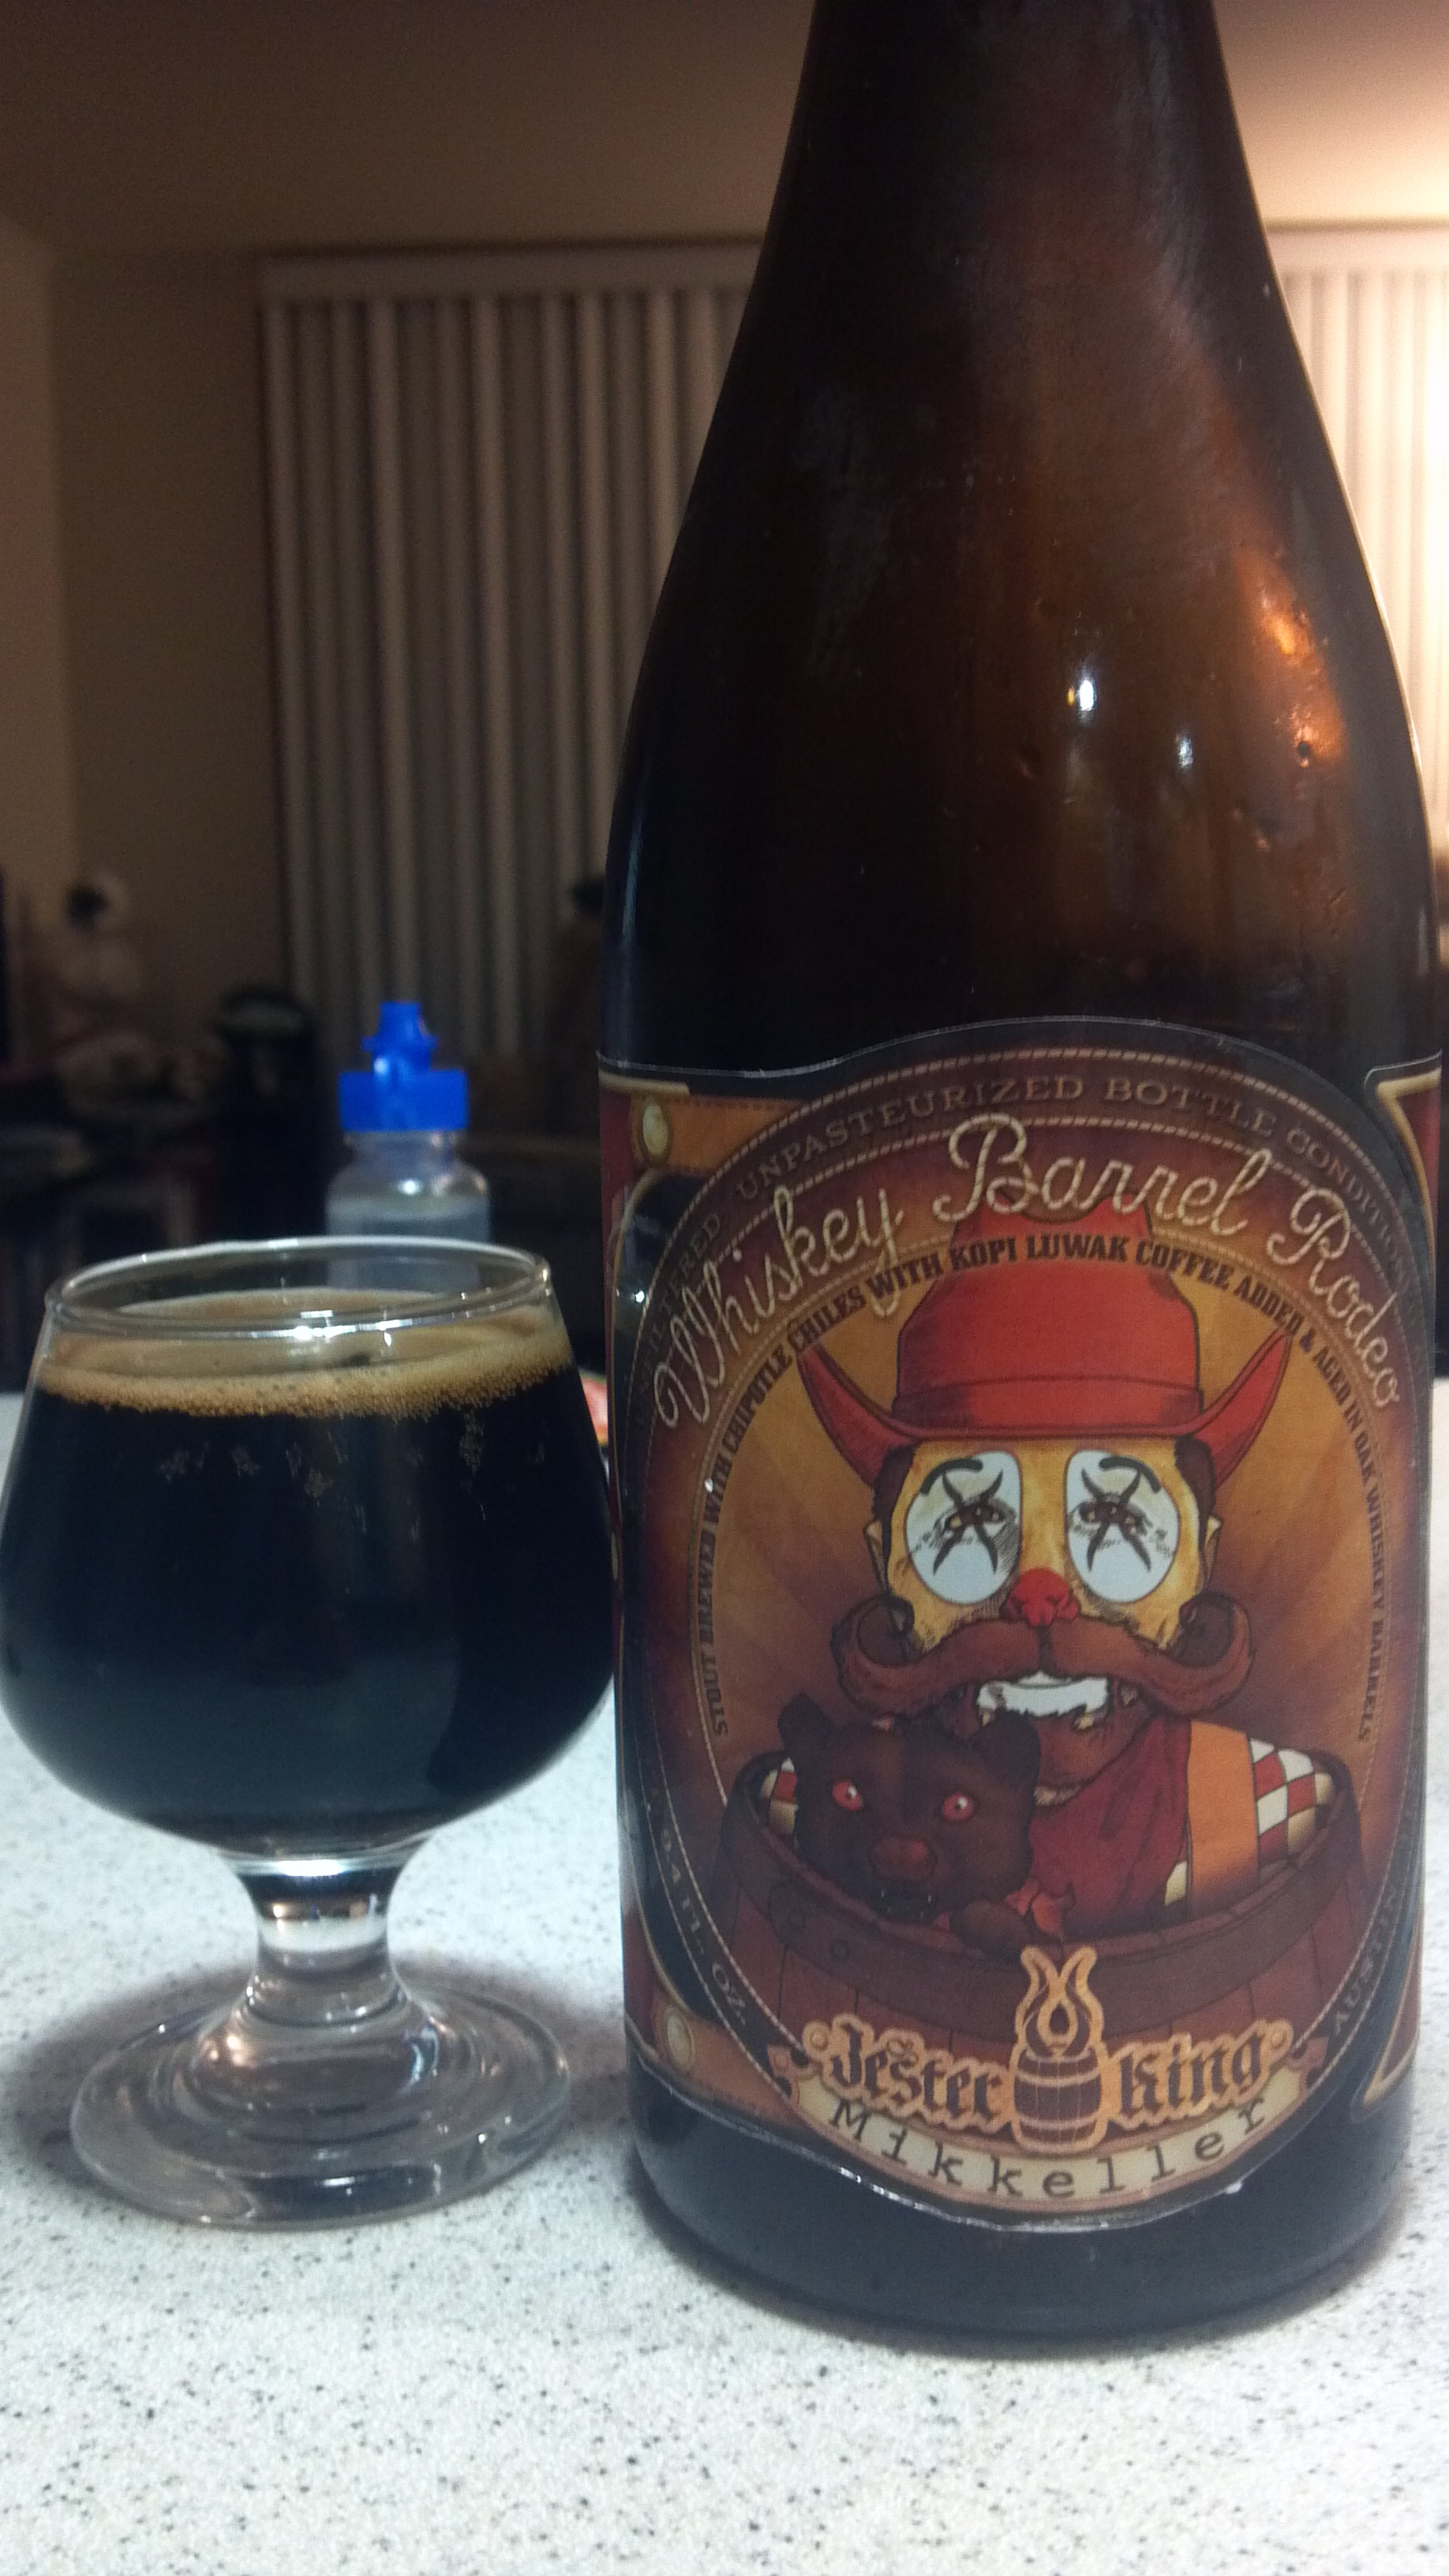 Jester King's Whiskey Barrel Rodeo